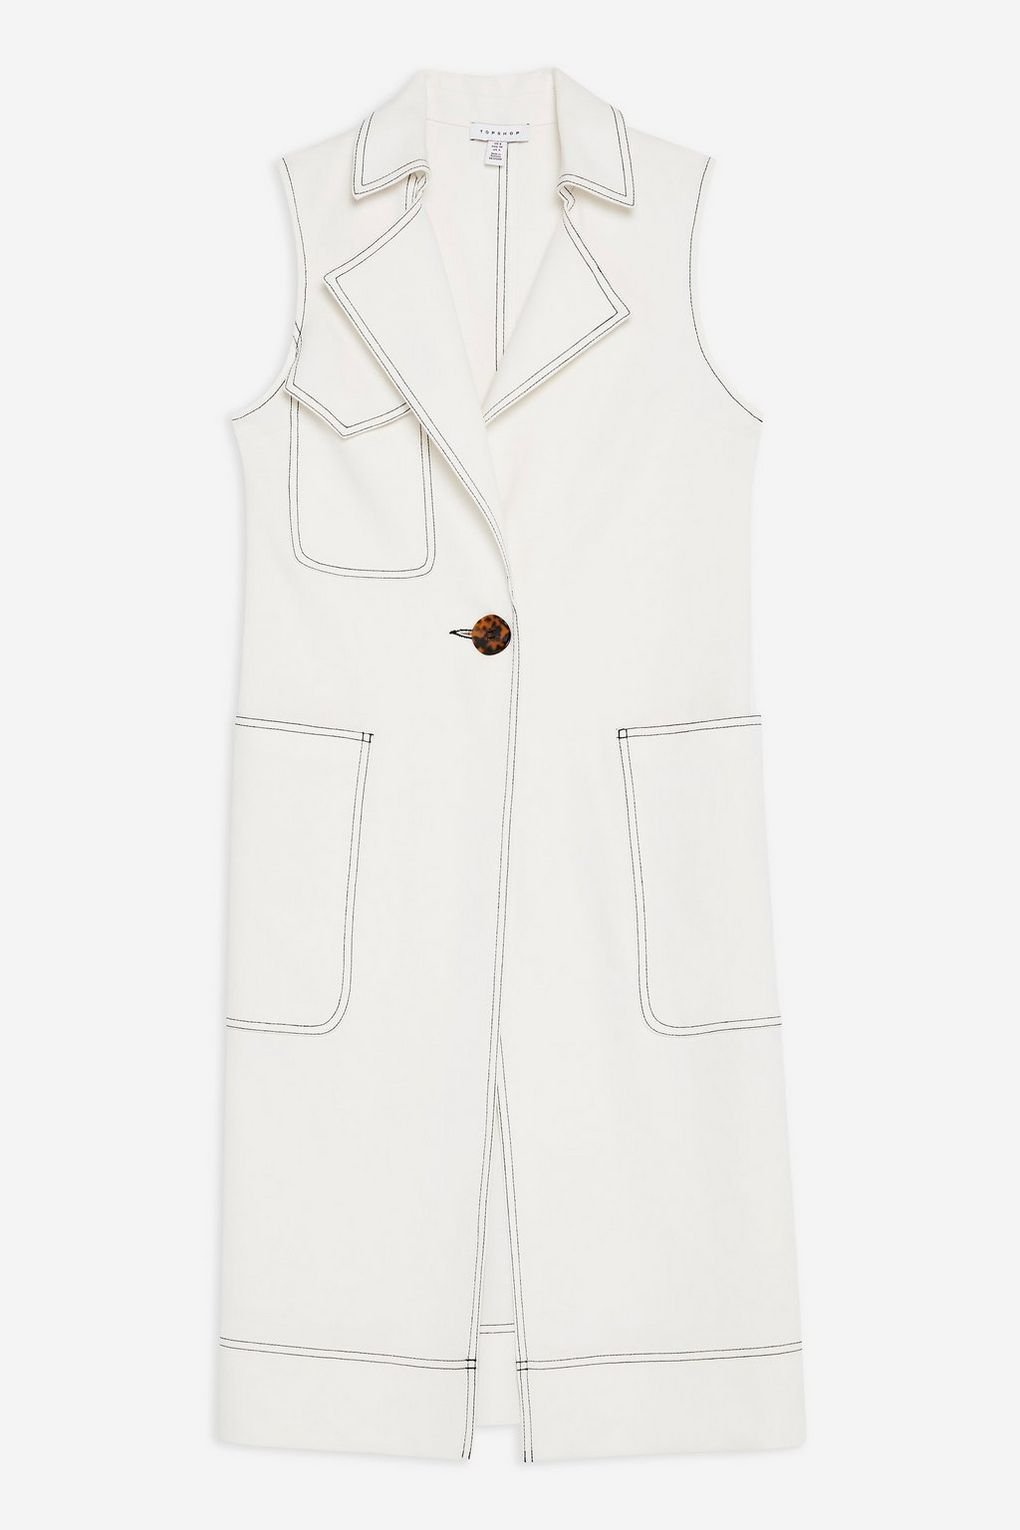 Utility Sleeveless Duster Coat - Topshop USA